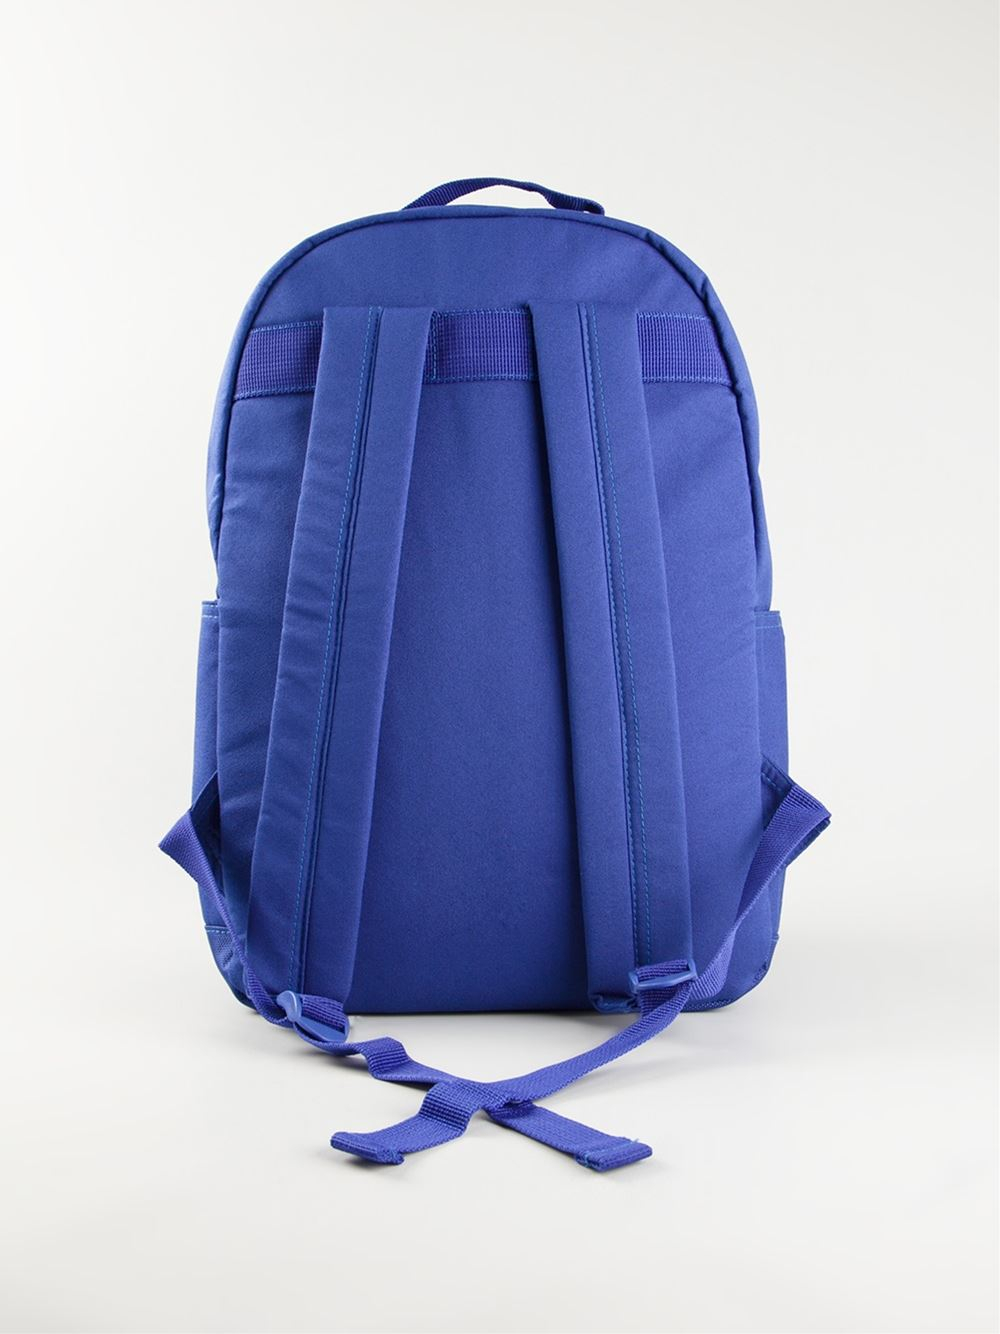 WOOD WOOD 'Downey' Backpack in Blue for Men